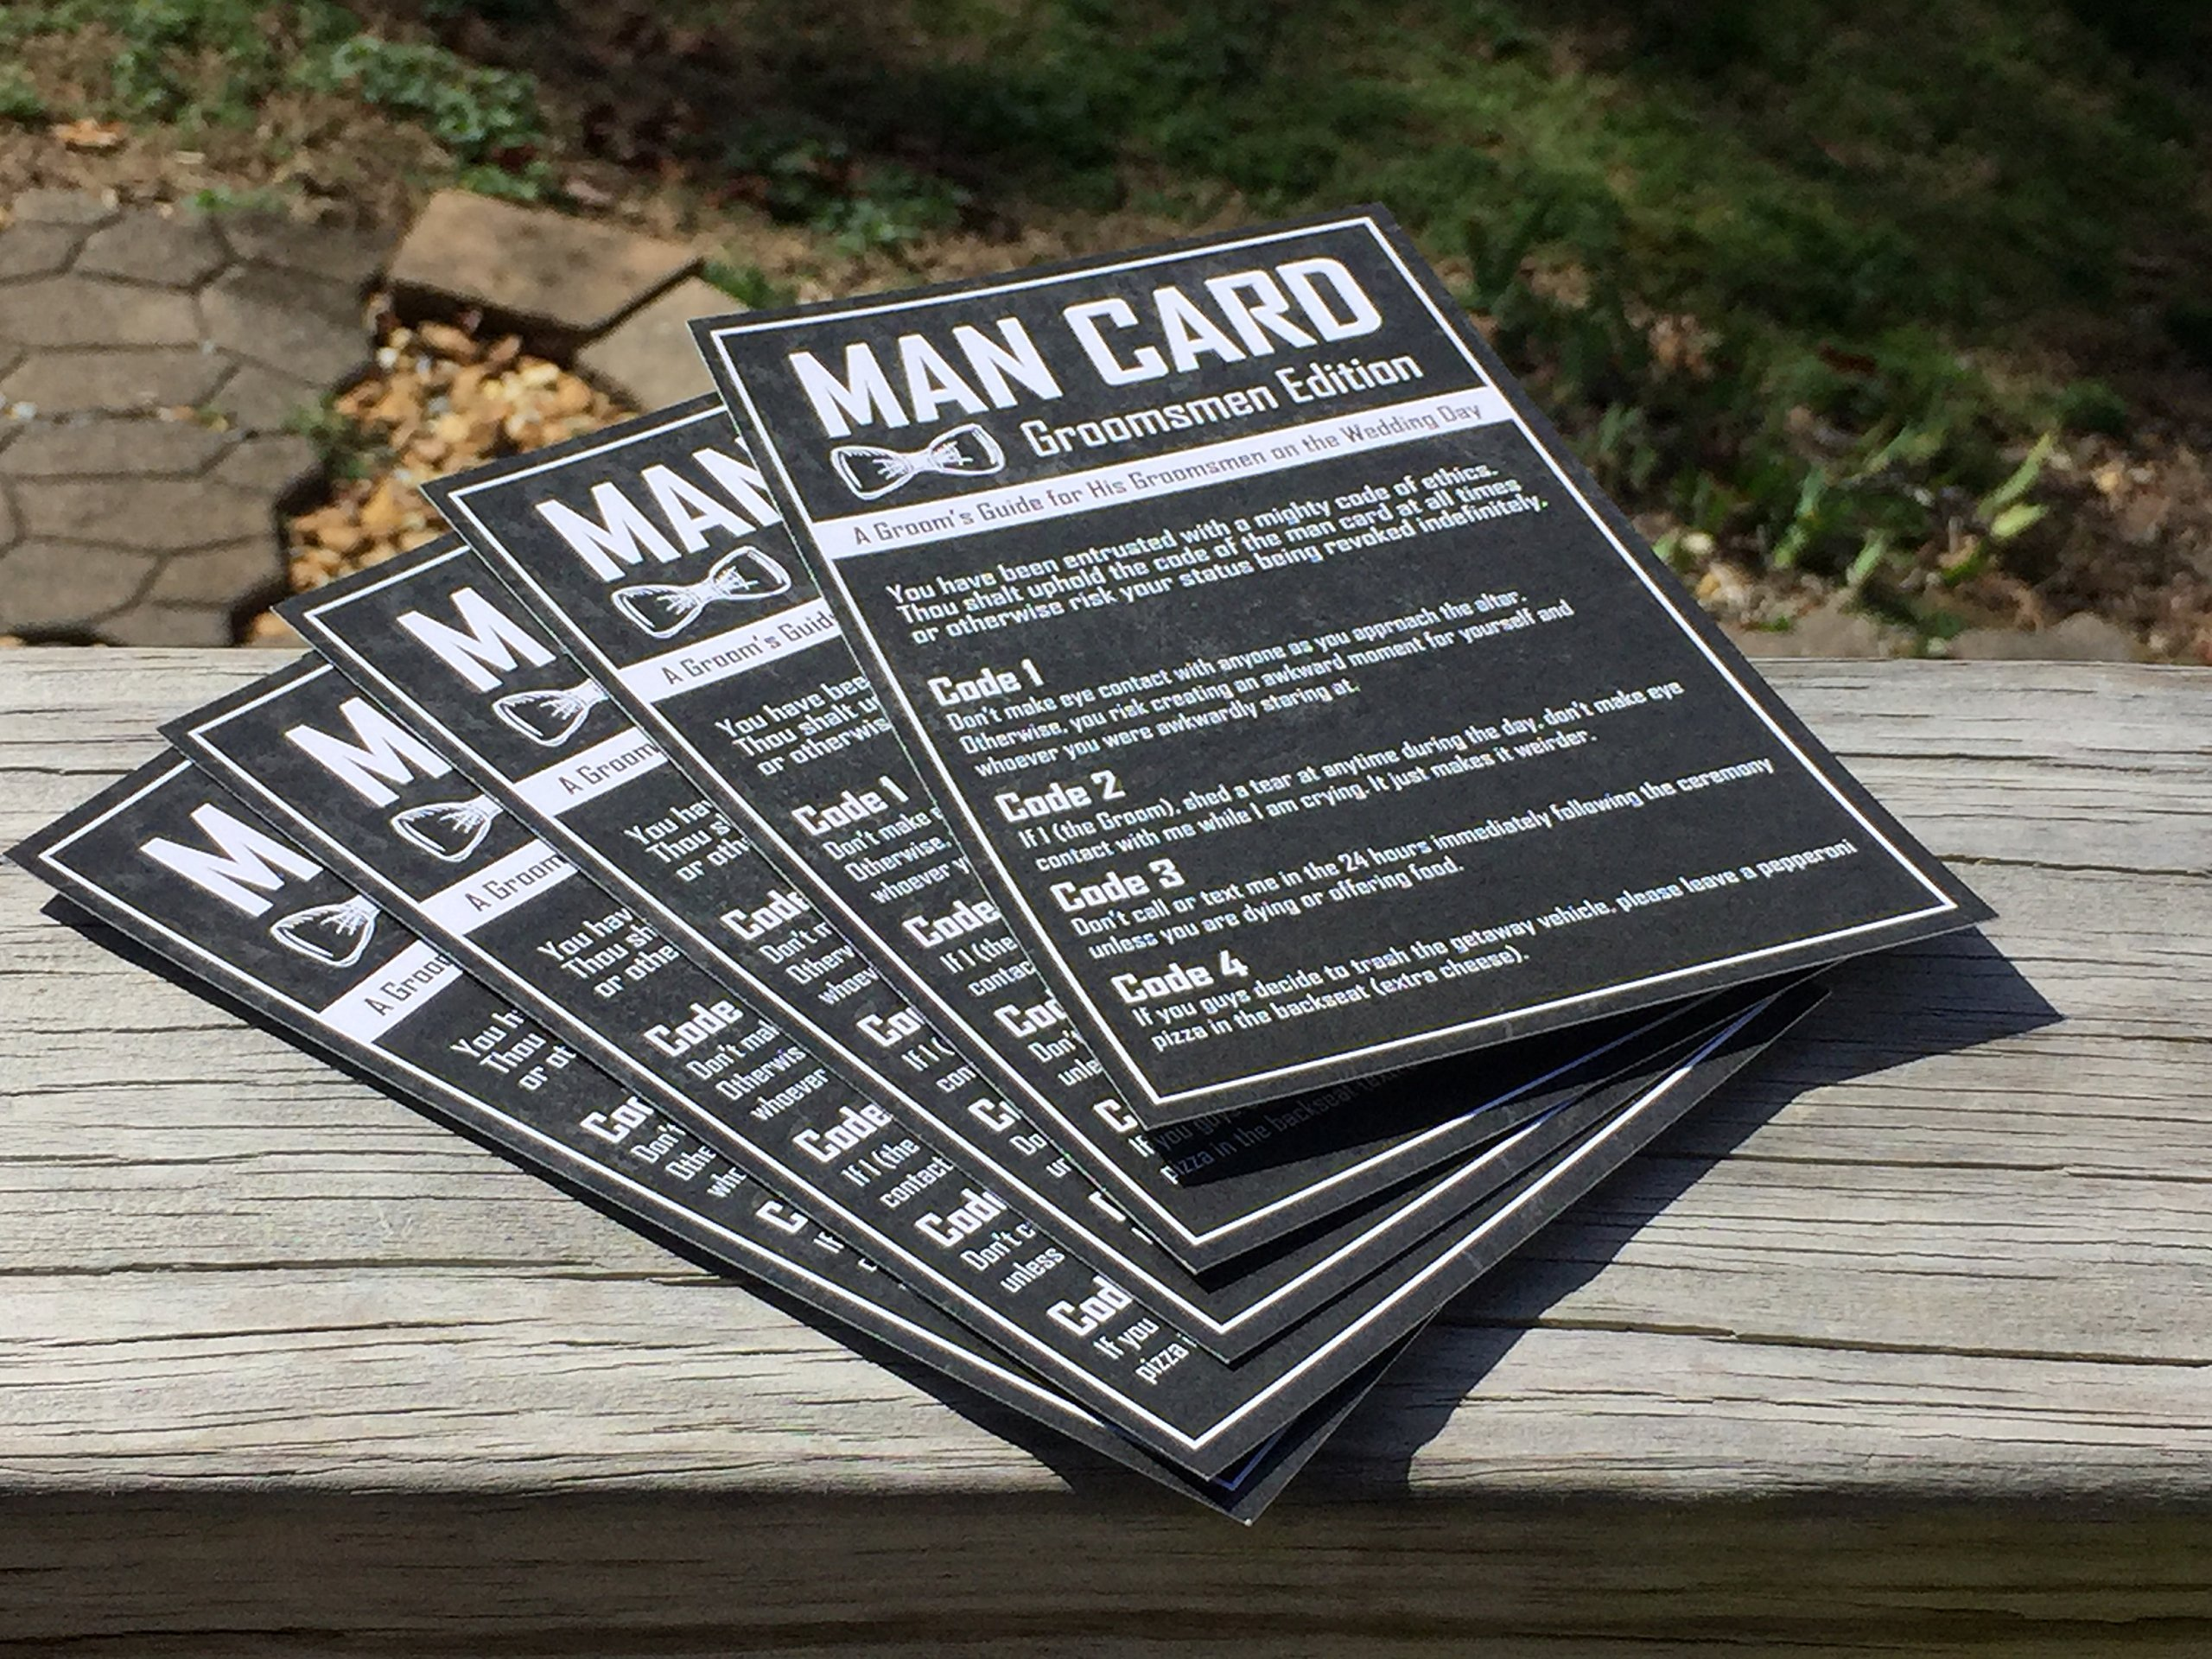 Groomsmen Gifts For Wedding - The Man Card - Groomsmen Edition 6-Pack by Wannabe Genius (Image #2)